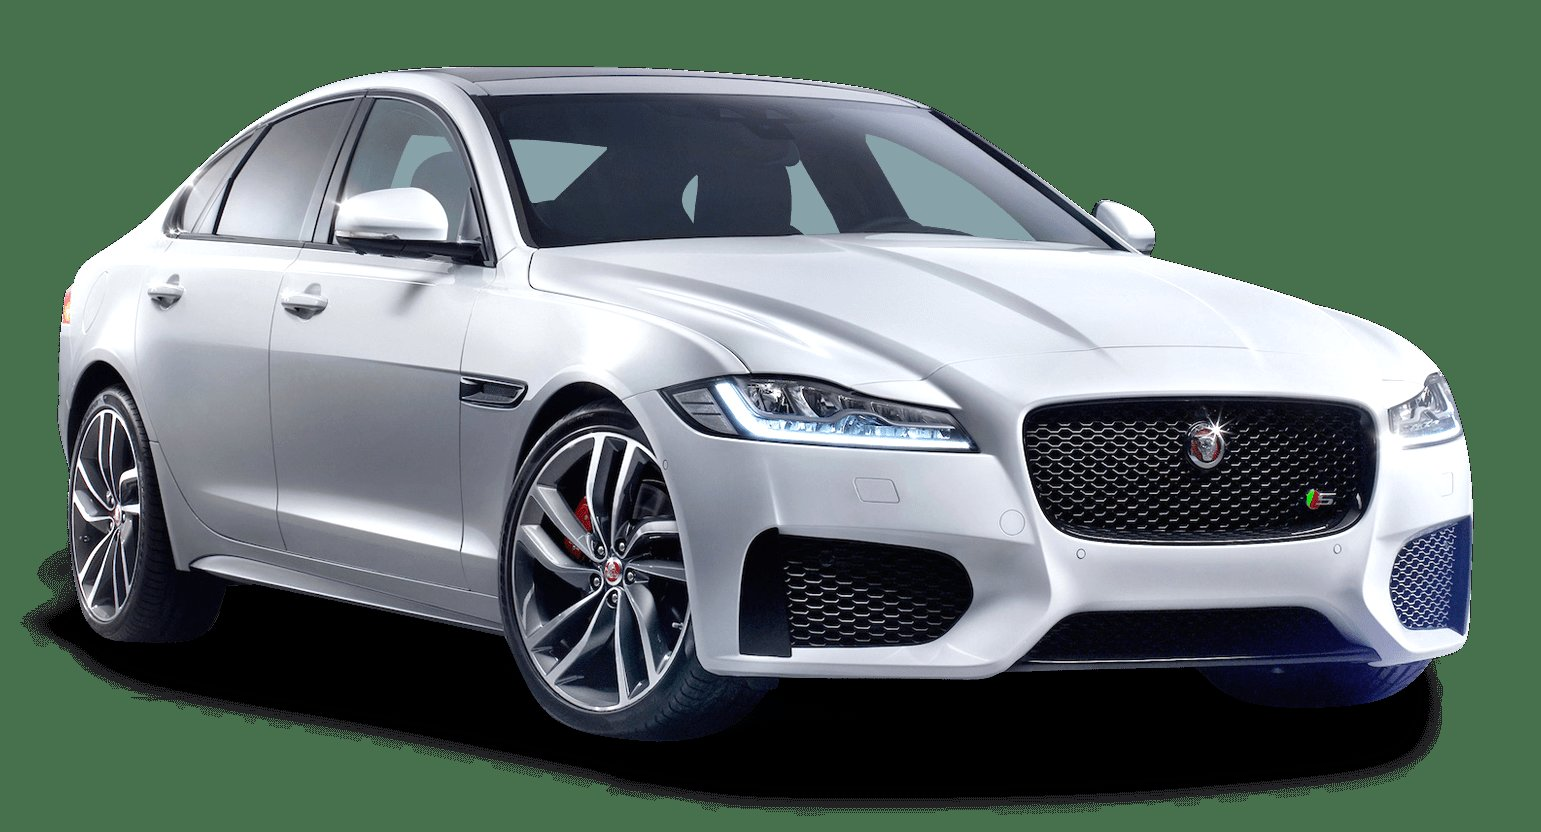 New White Jaguar Xf 2 Car Png Image Pngpix On This Month